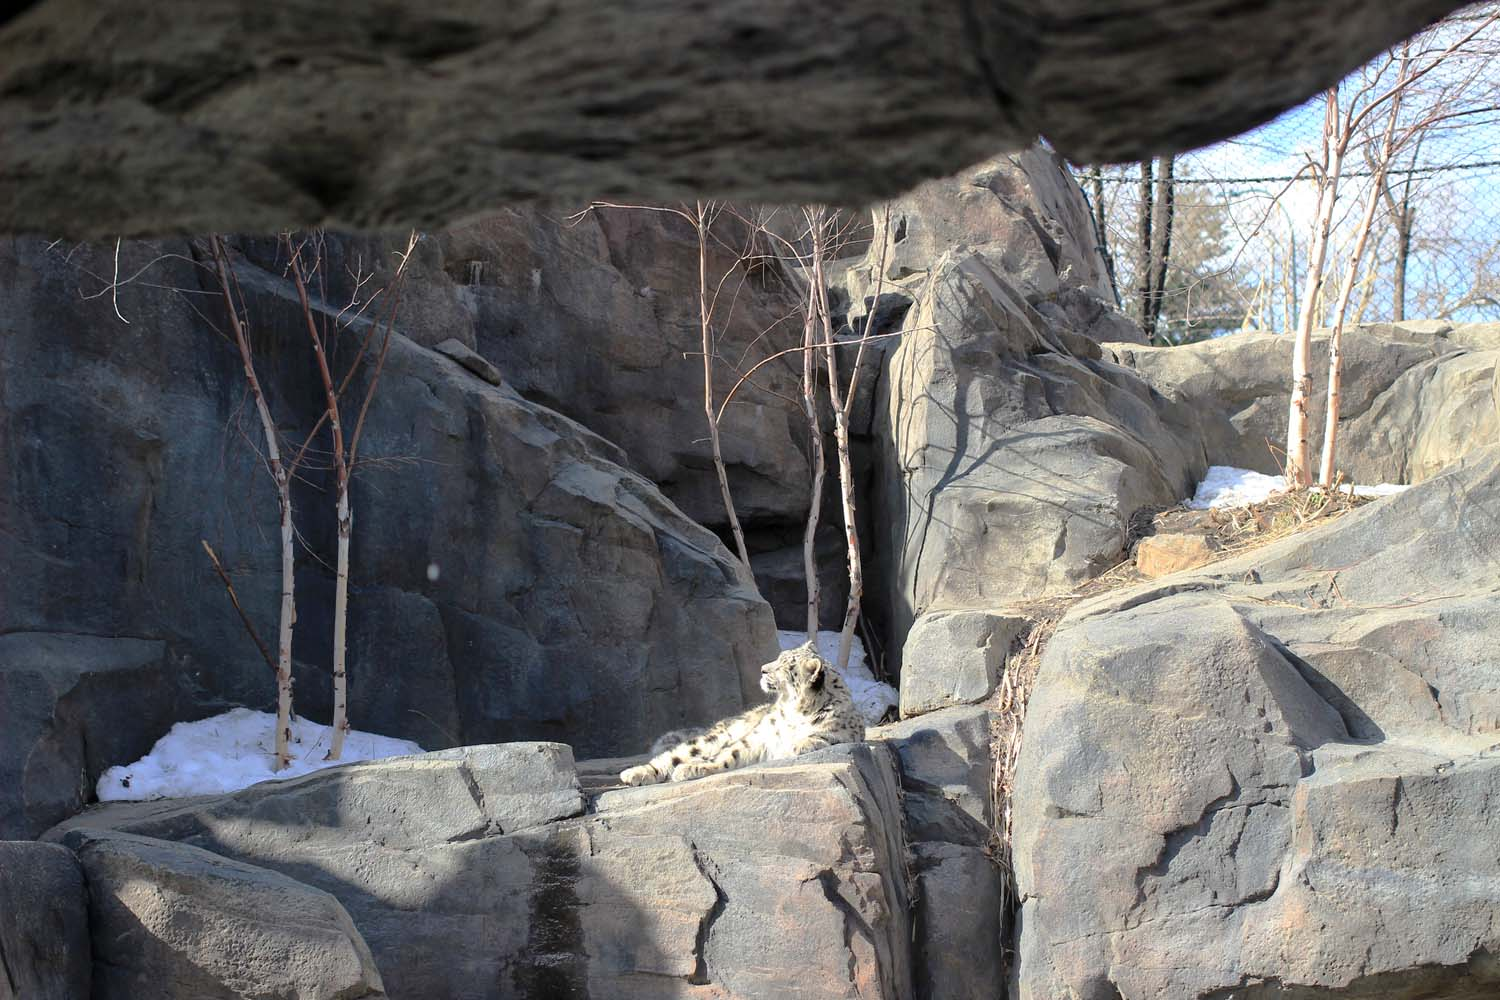 Snow Leopard Cub at Central Park Zoo; Image:  Laura Messersmith